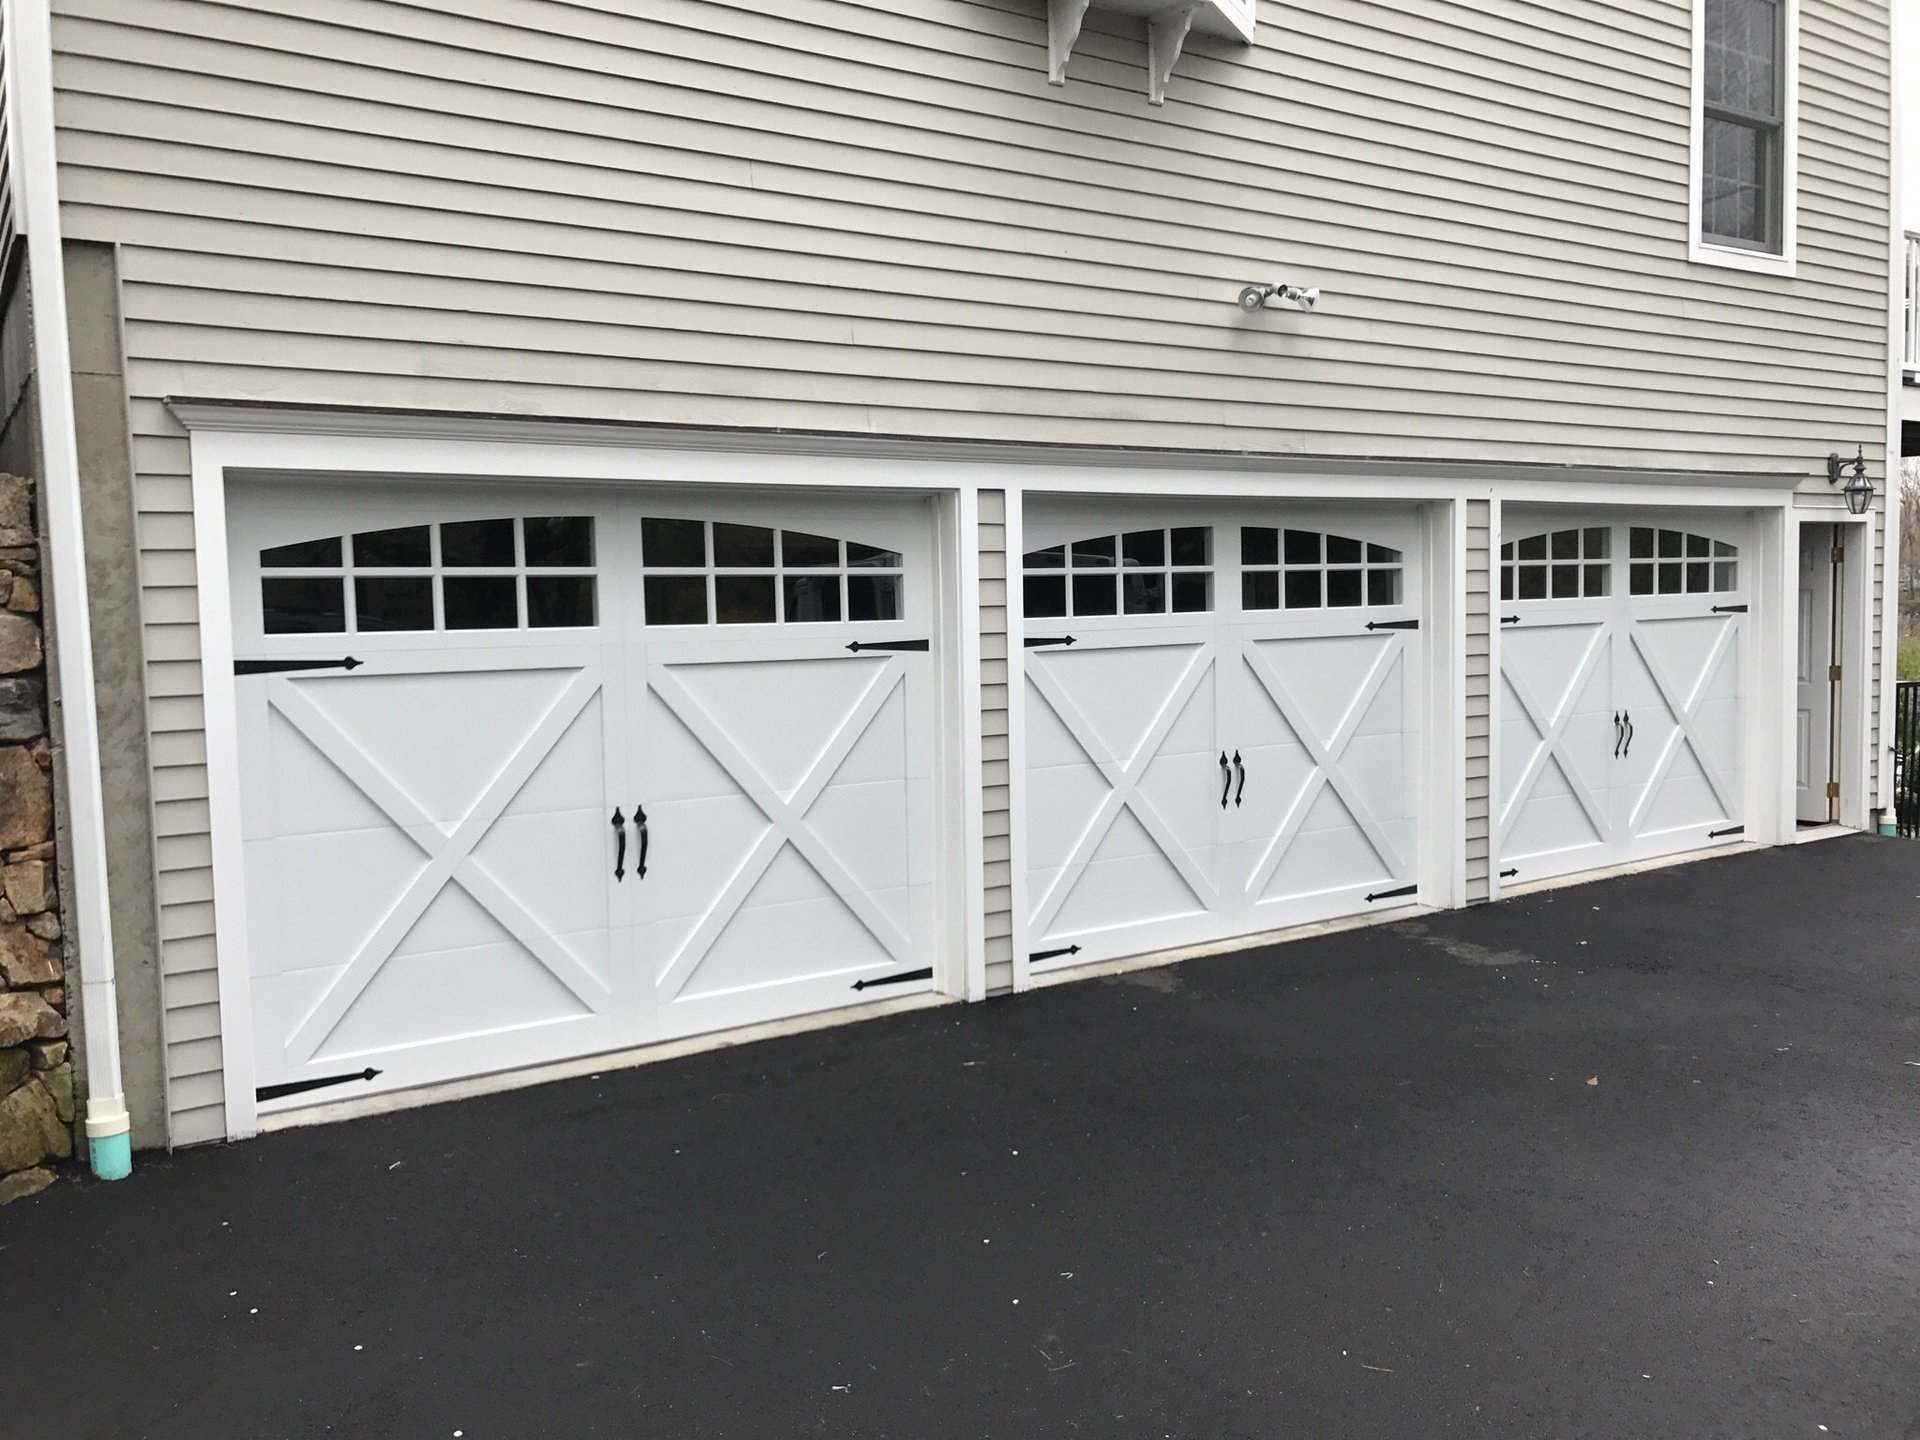 Contact For Garage Repair Greenwich Bethel Darien Ct Casella